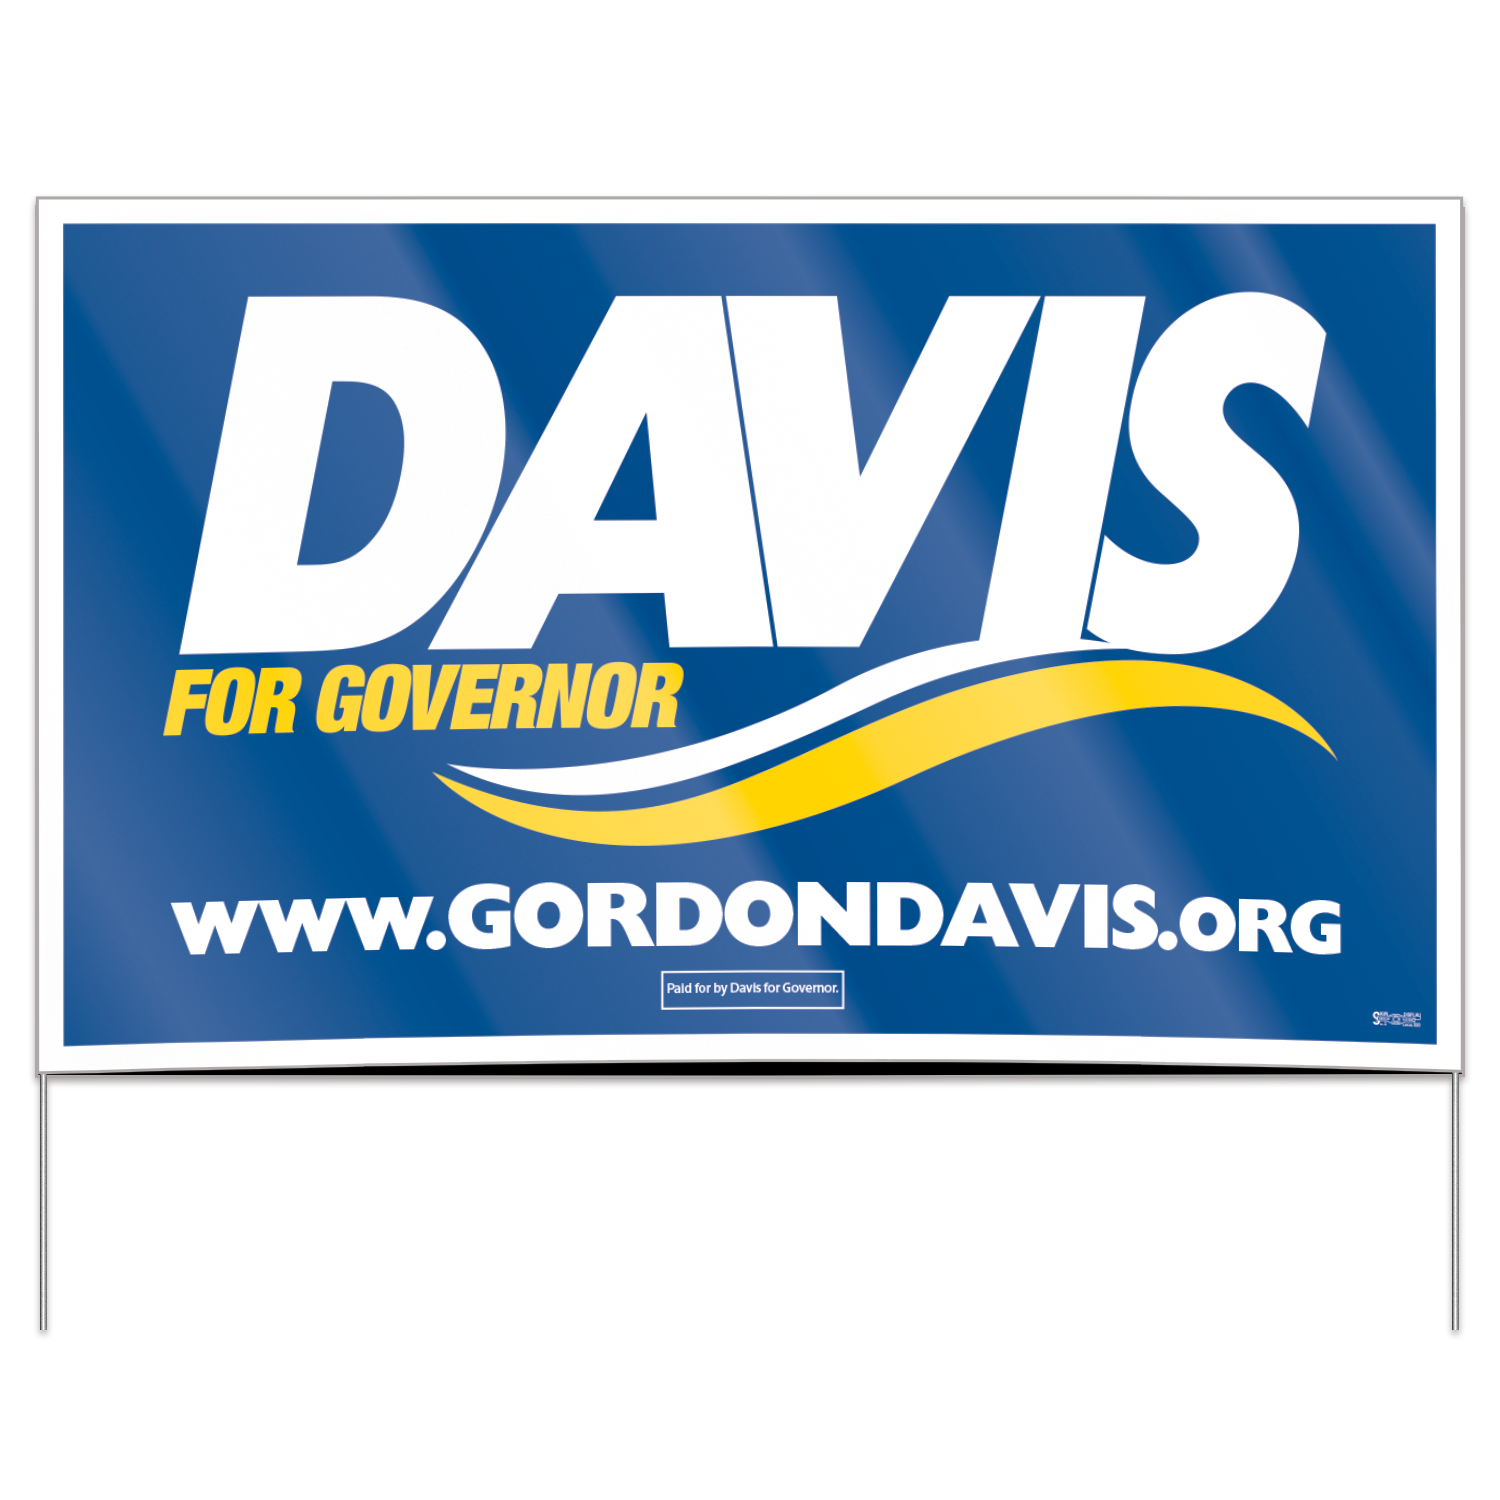 https://www.sswprinting.com/images/products_gallery_images/400101_Davis-for-Governor_hi-res_1_.png